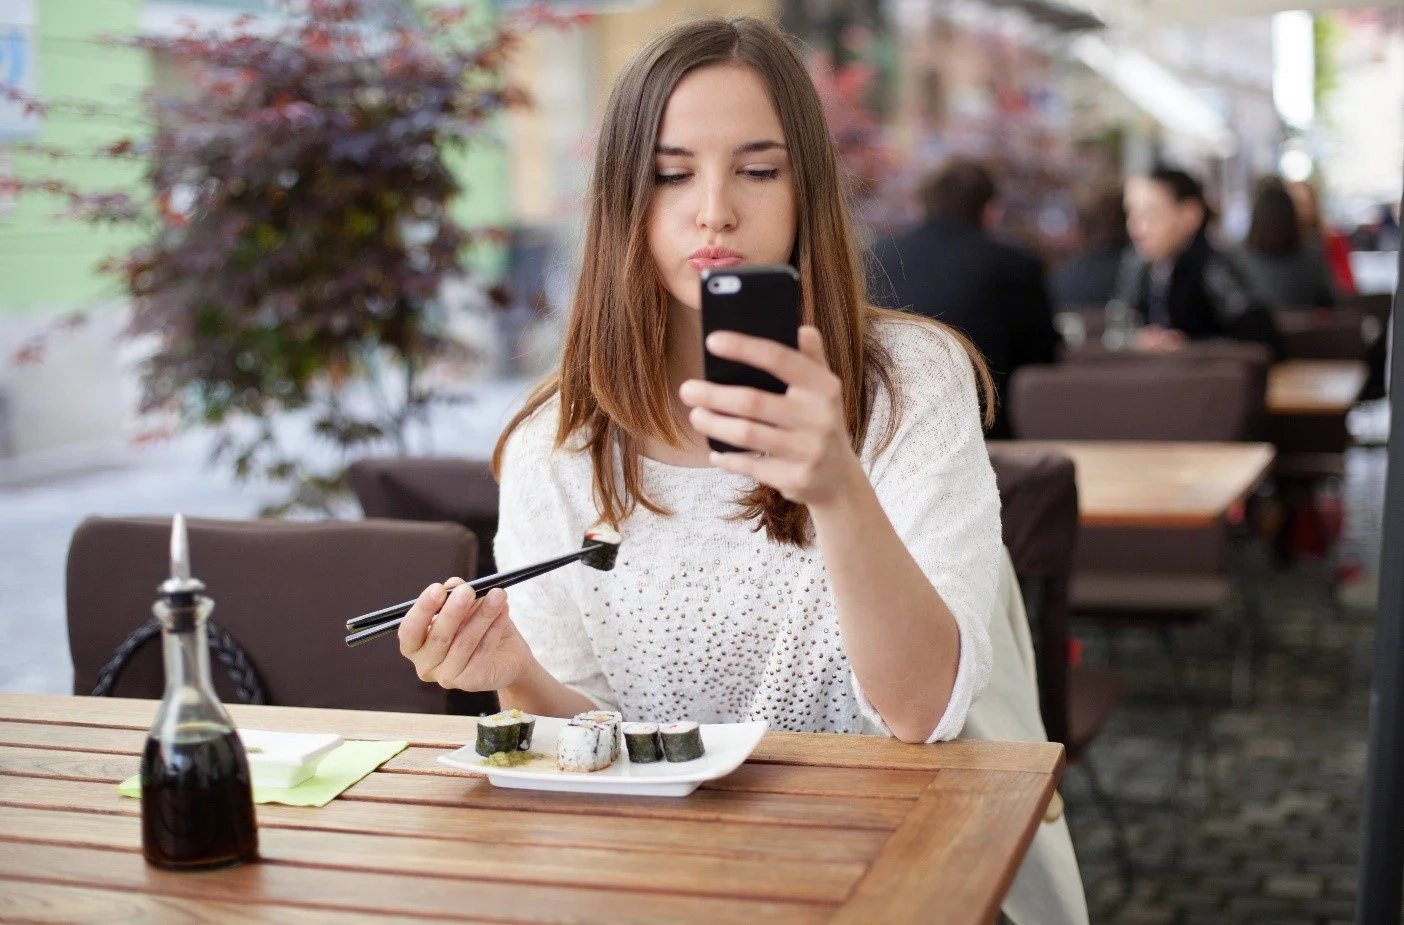 Here are signs you are addicted to your smartphone